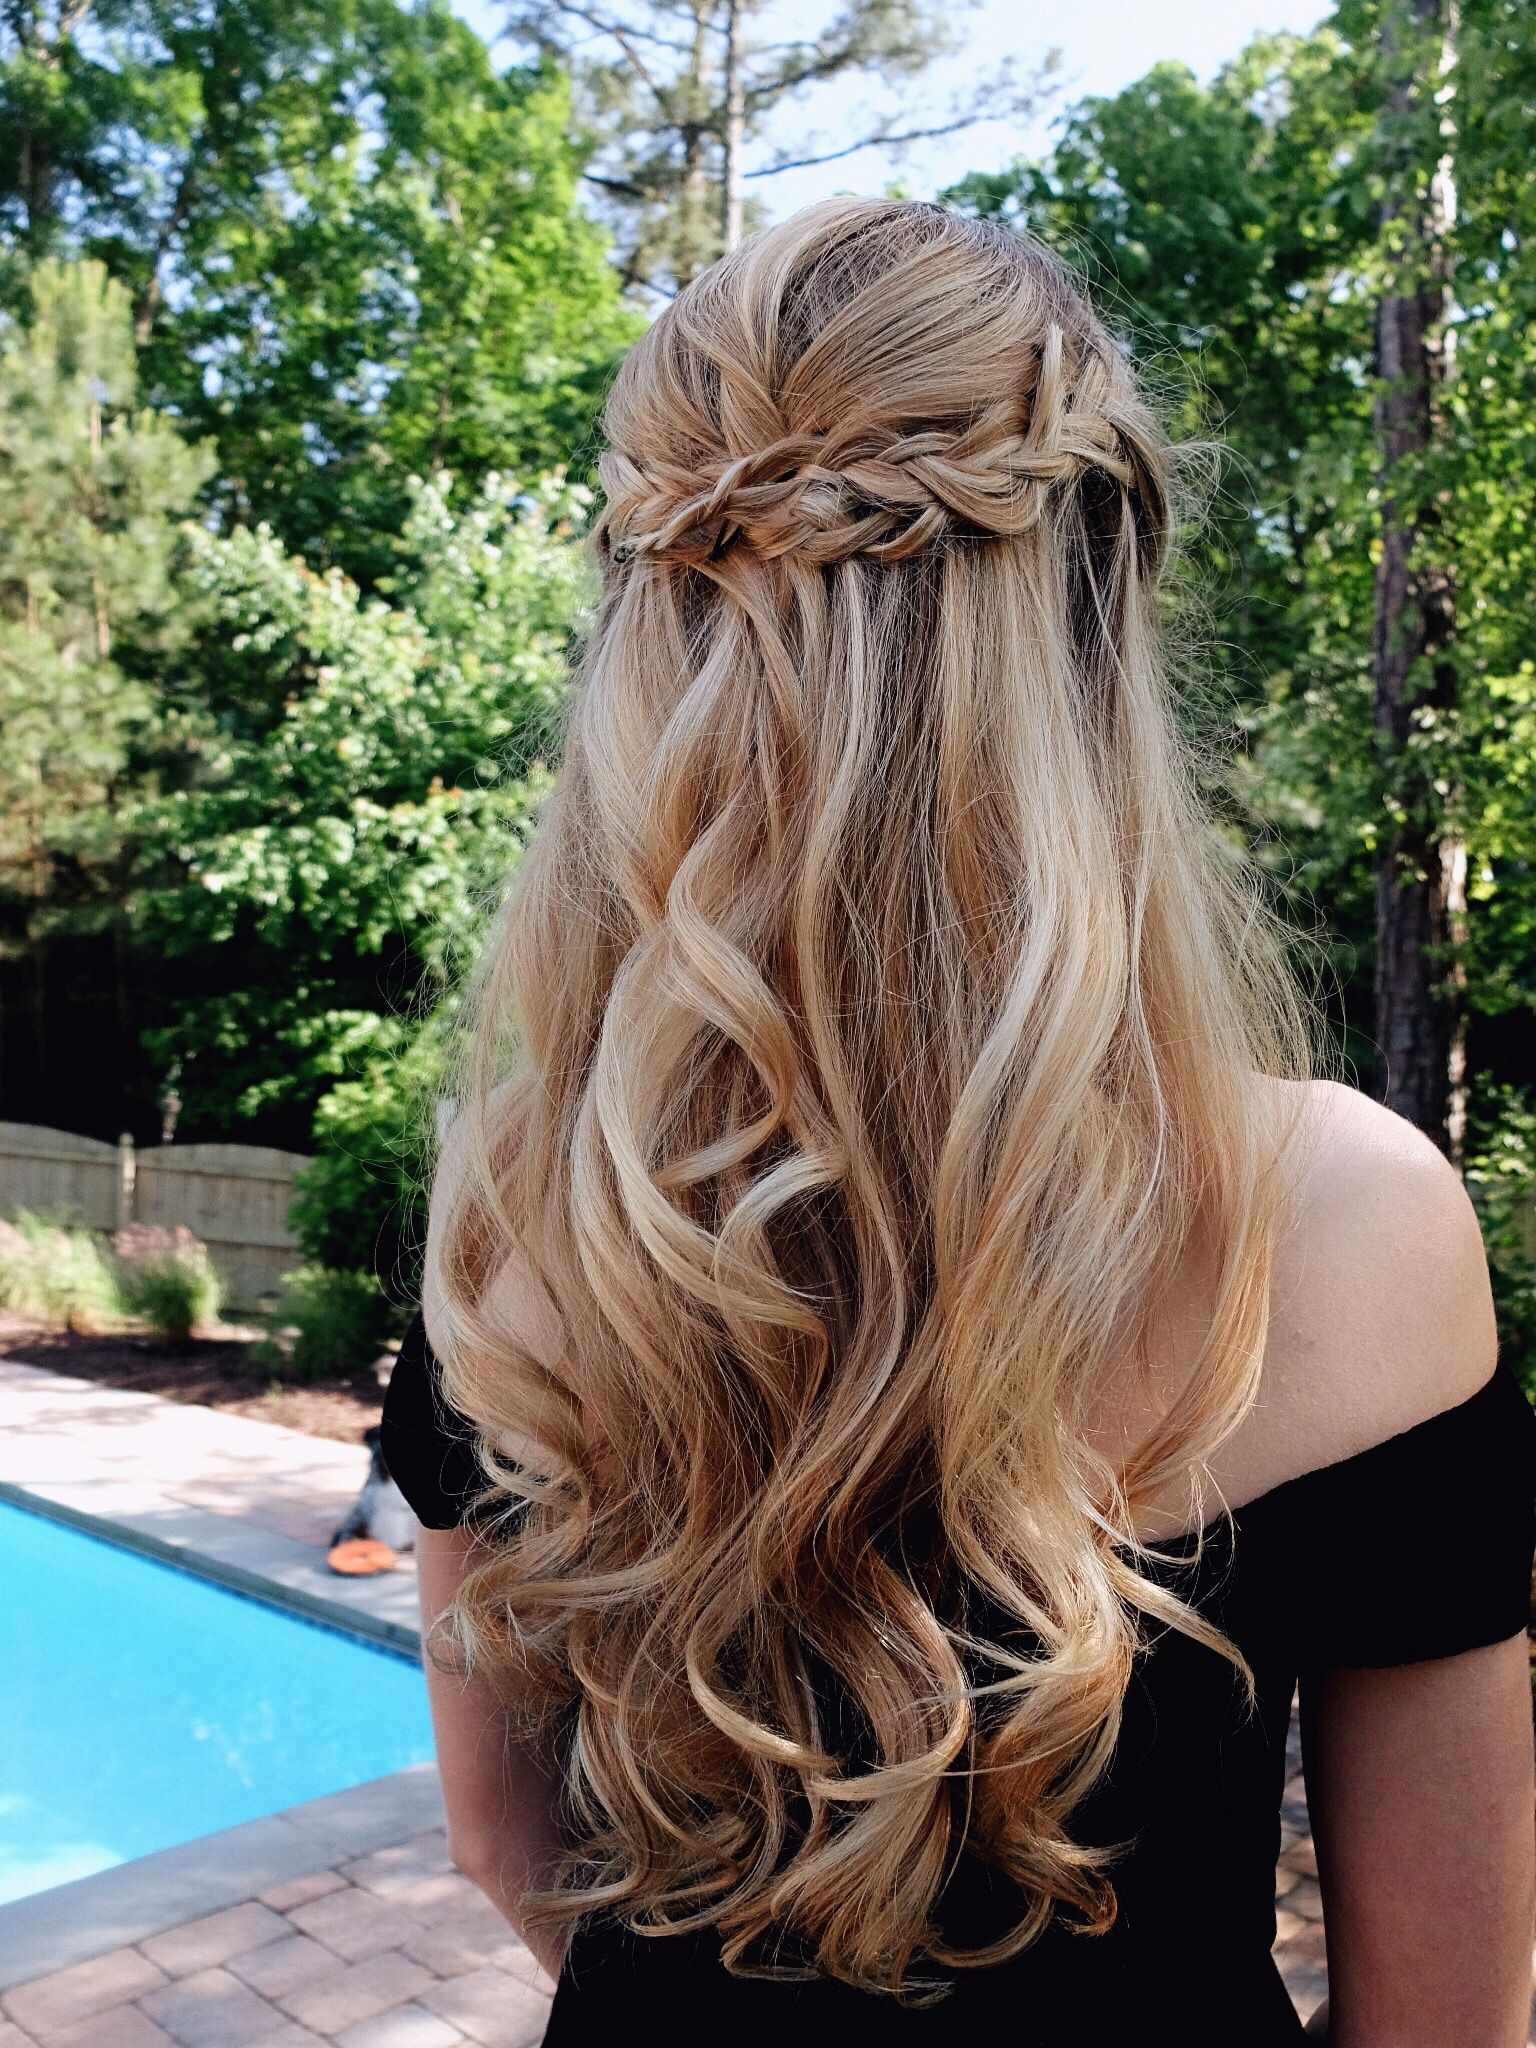 Beautiful Prom Hair prom promhair braid curls Prom in